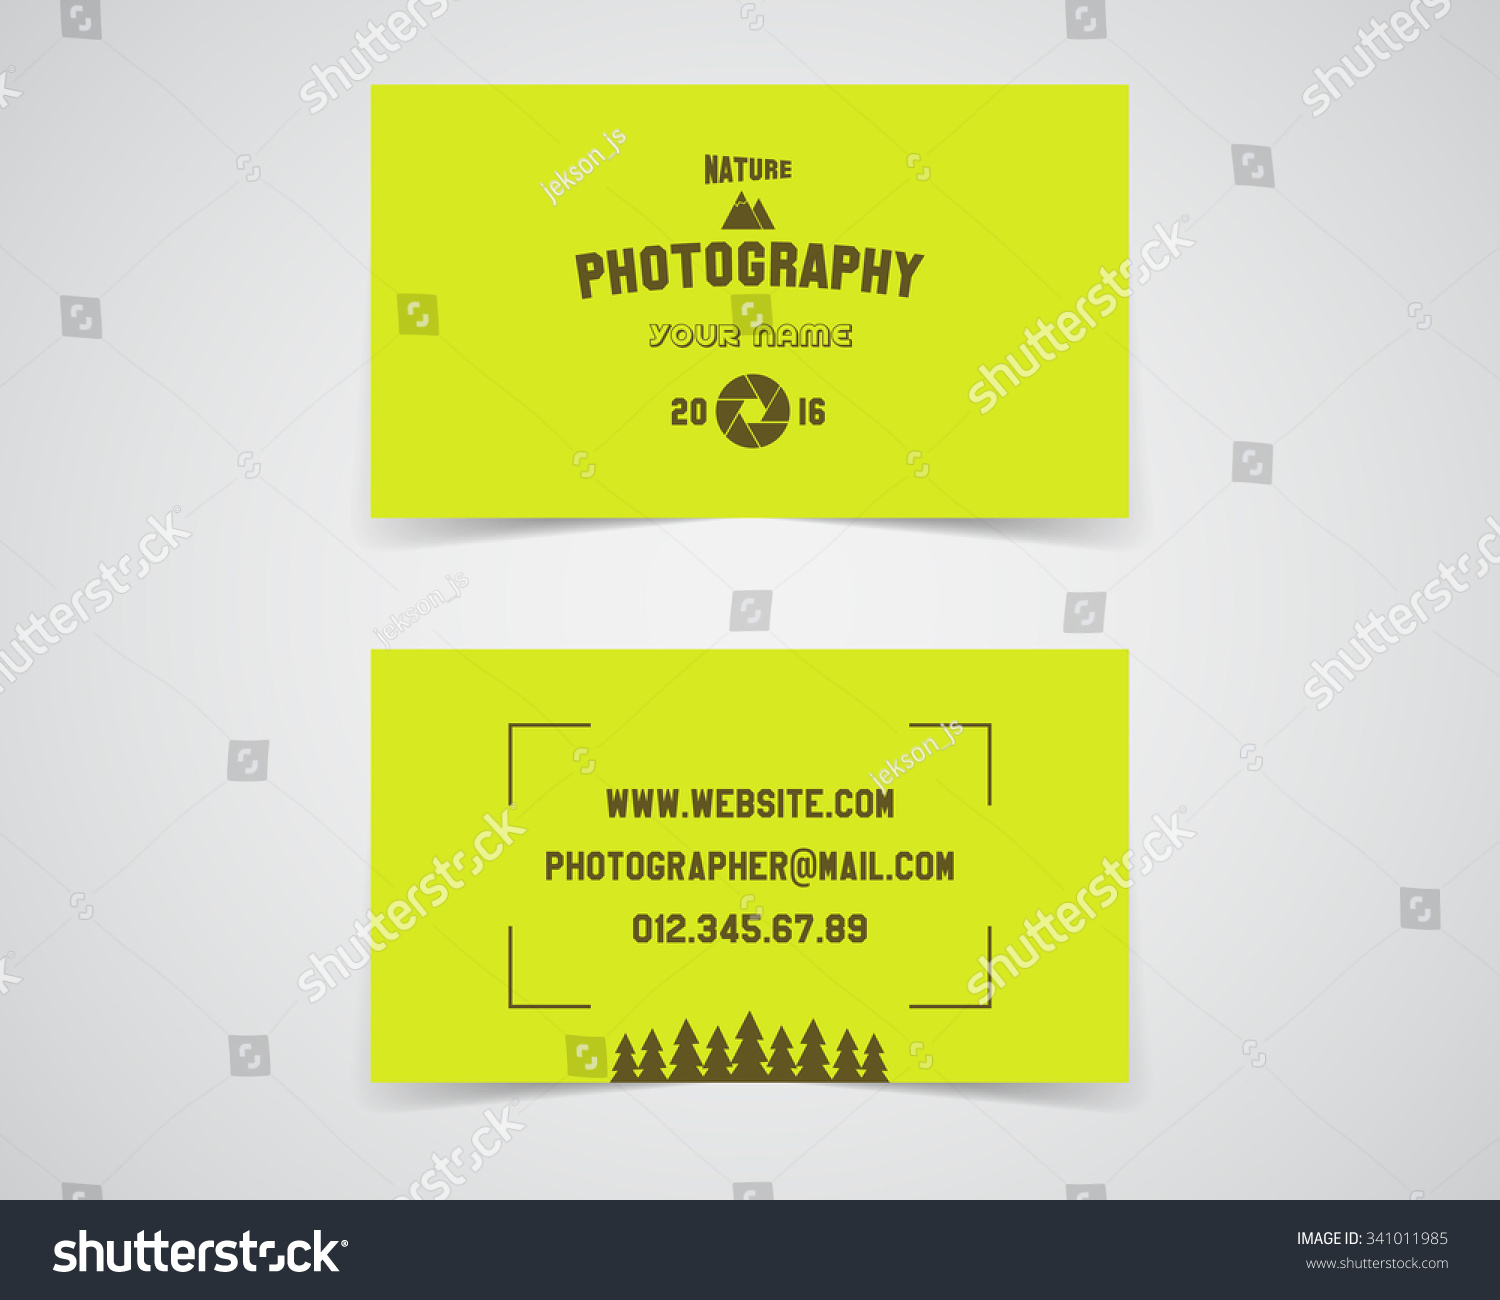 Modern light business card template nature stock vector 2018 modern light business card template for nature photography studio unusual design corporate brand identity reheart Image collections